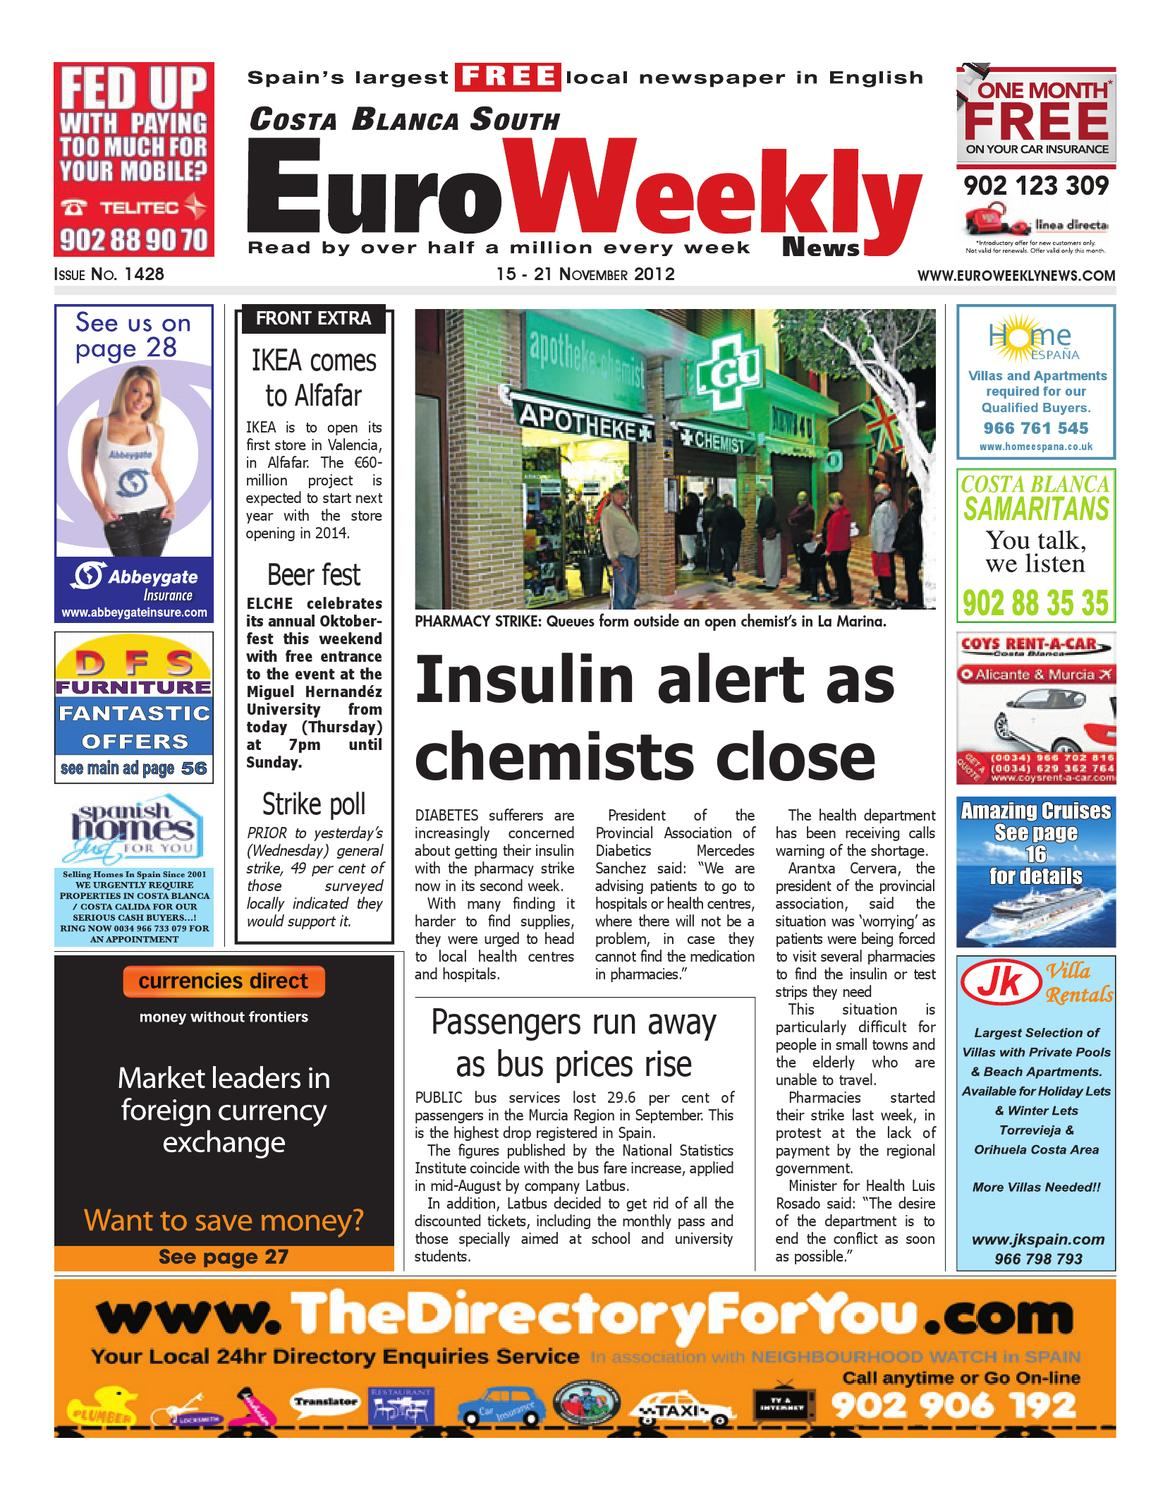 Muebles Chacon Mollet Costa Blanca South 15 21 November 2012 Issue 1428